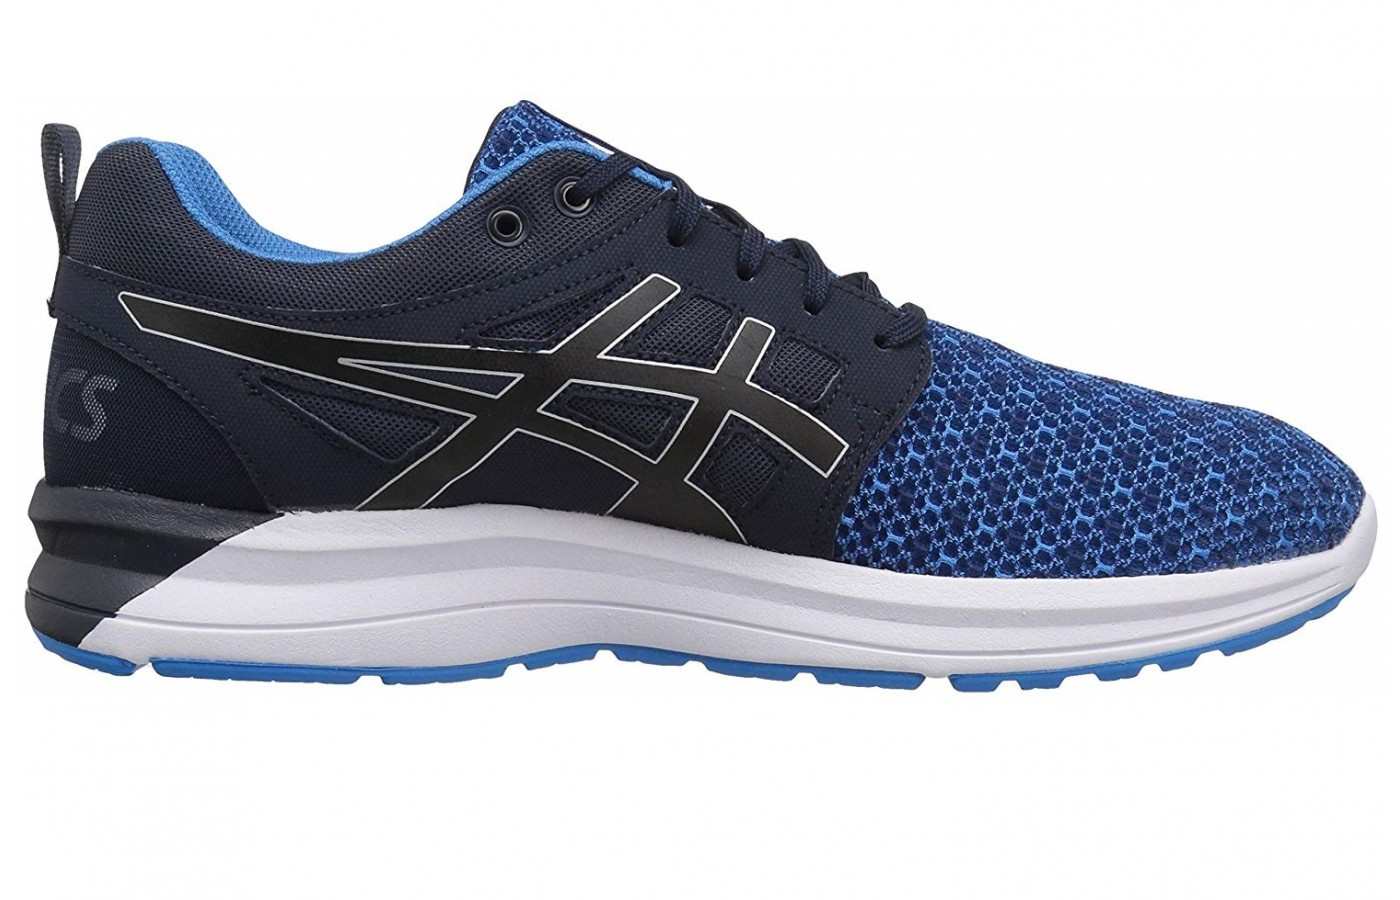 asics-gel-torrence-side-view-2